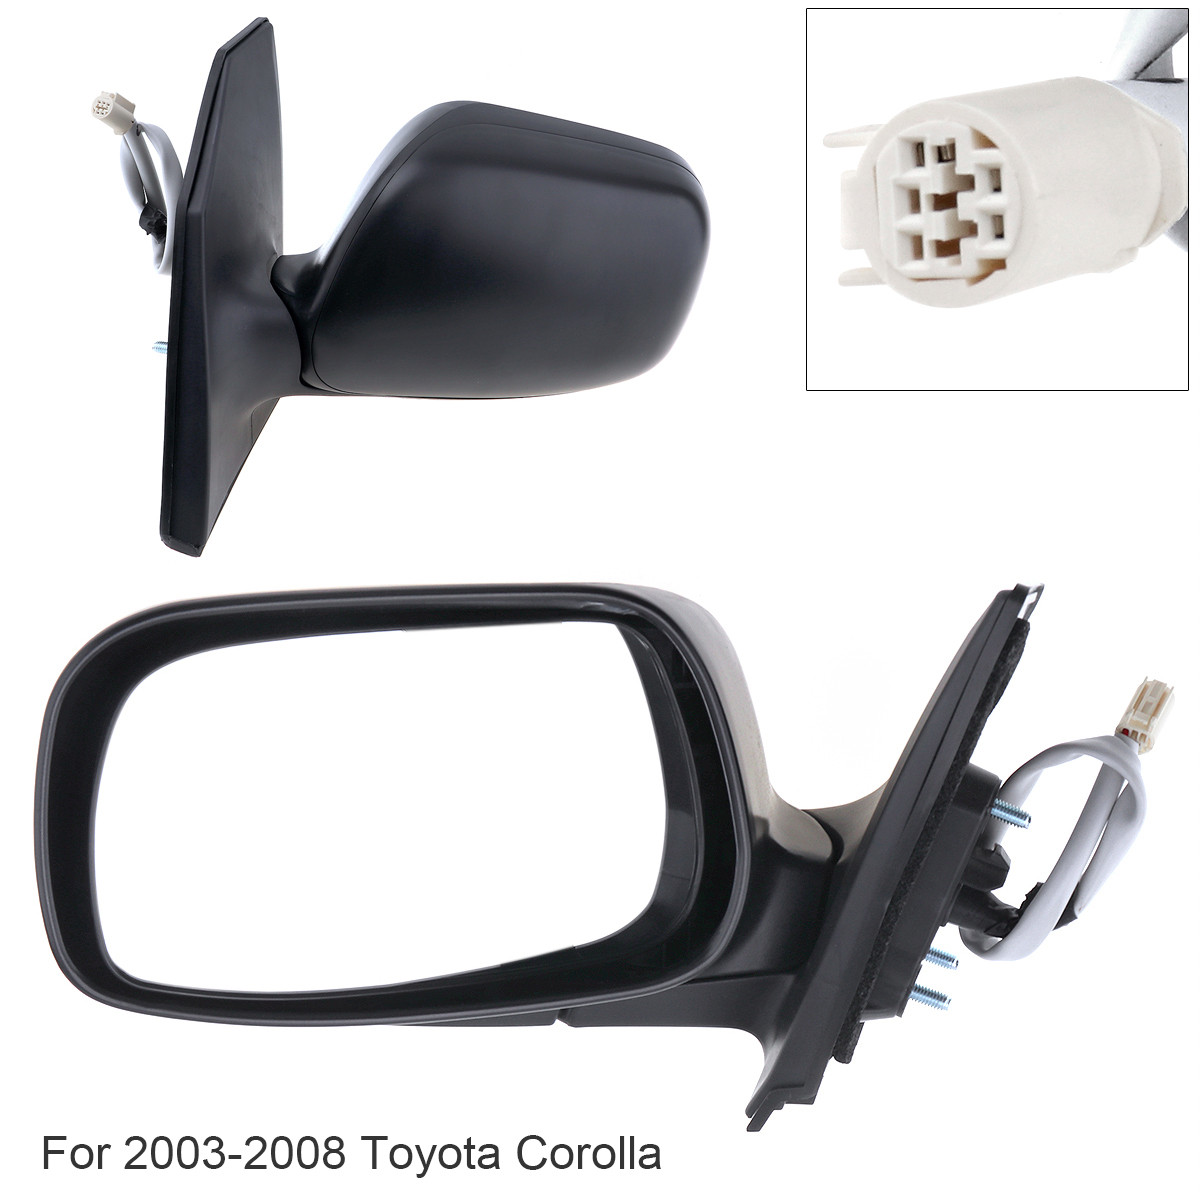 Durable Car Vehicle Left Side Mirror Left Hand LH Rear View Mirror for 2003-2008 Toyota Corolla CE LE S Sport XRS Sedan 4-Door